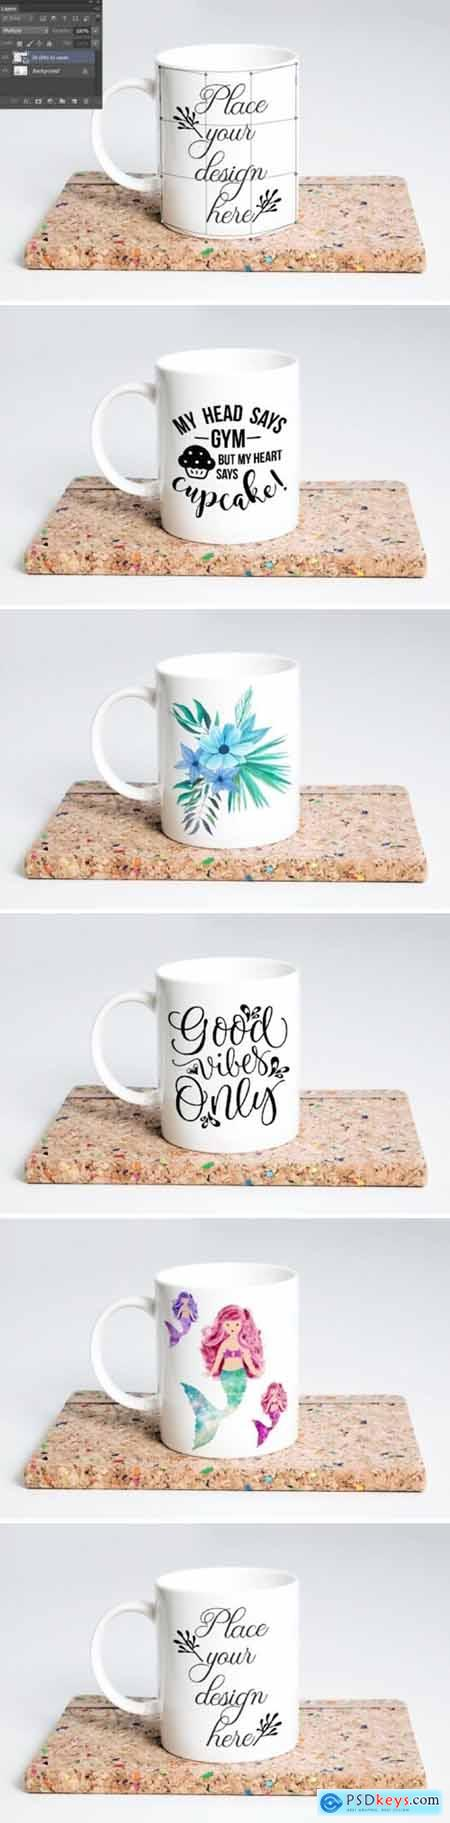 Coffee Mug Mockup 11 Oz Sublimation Cup